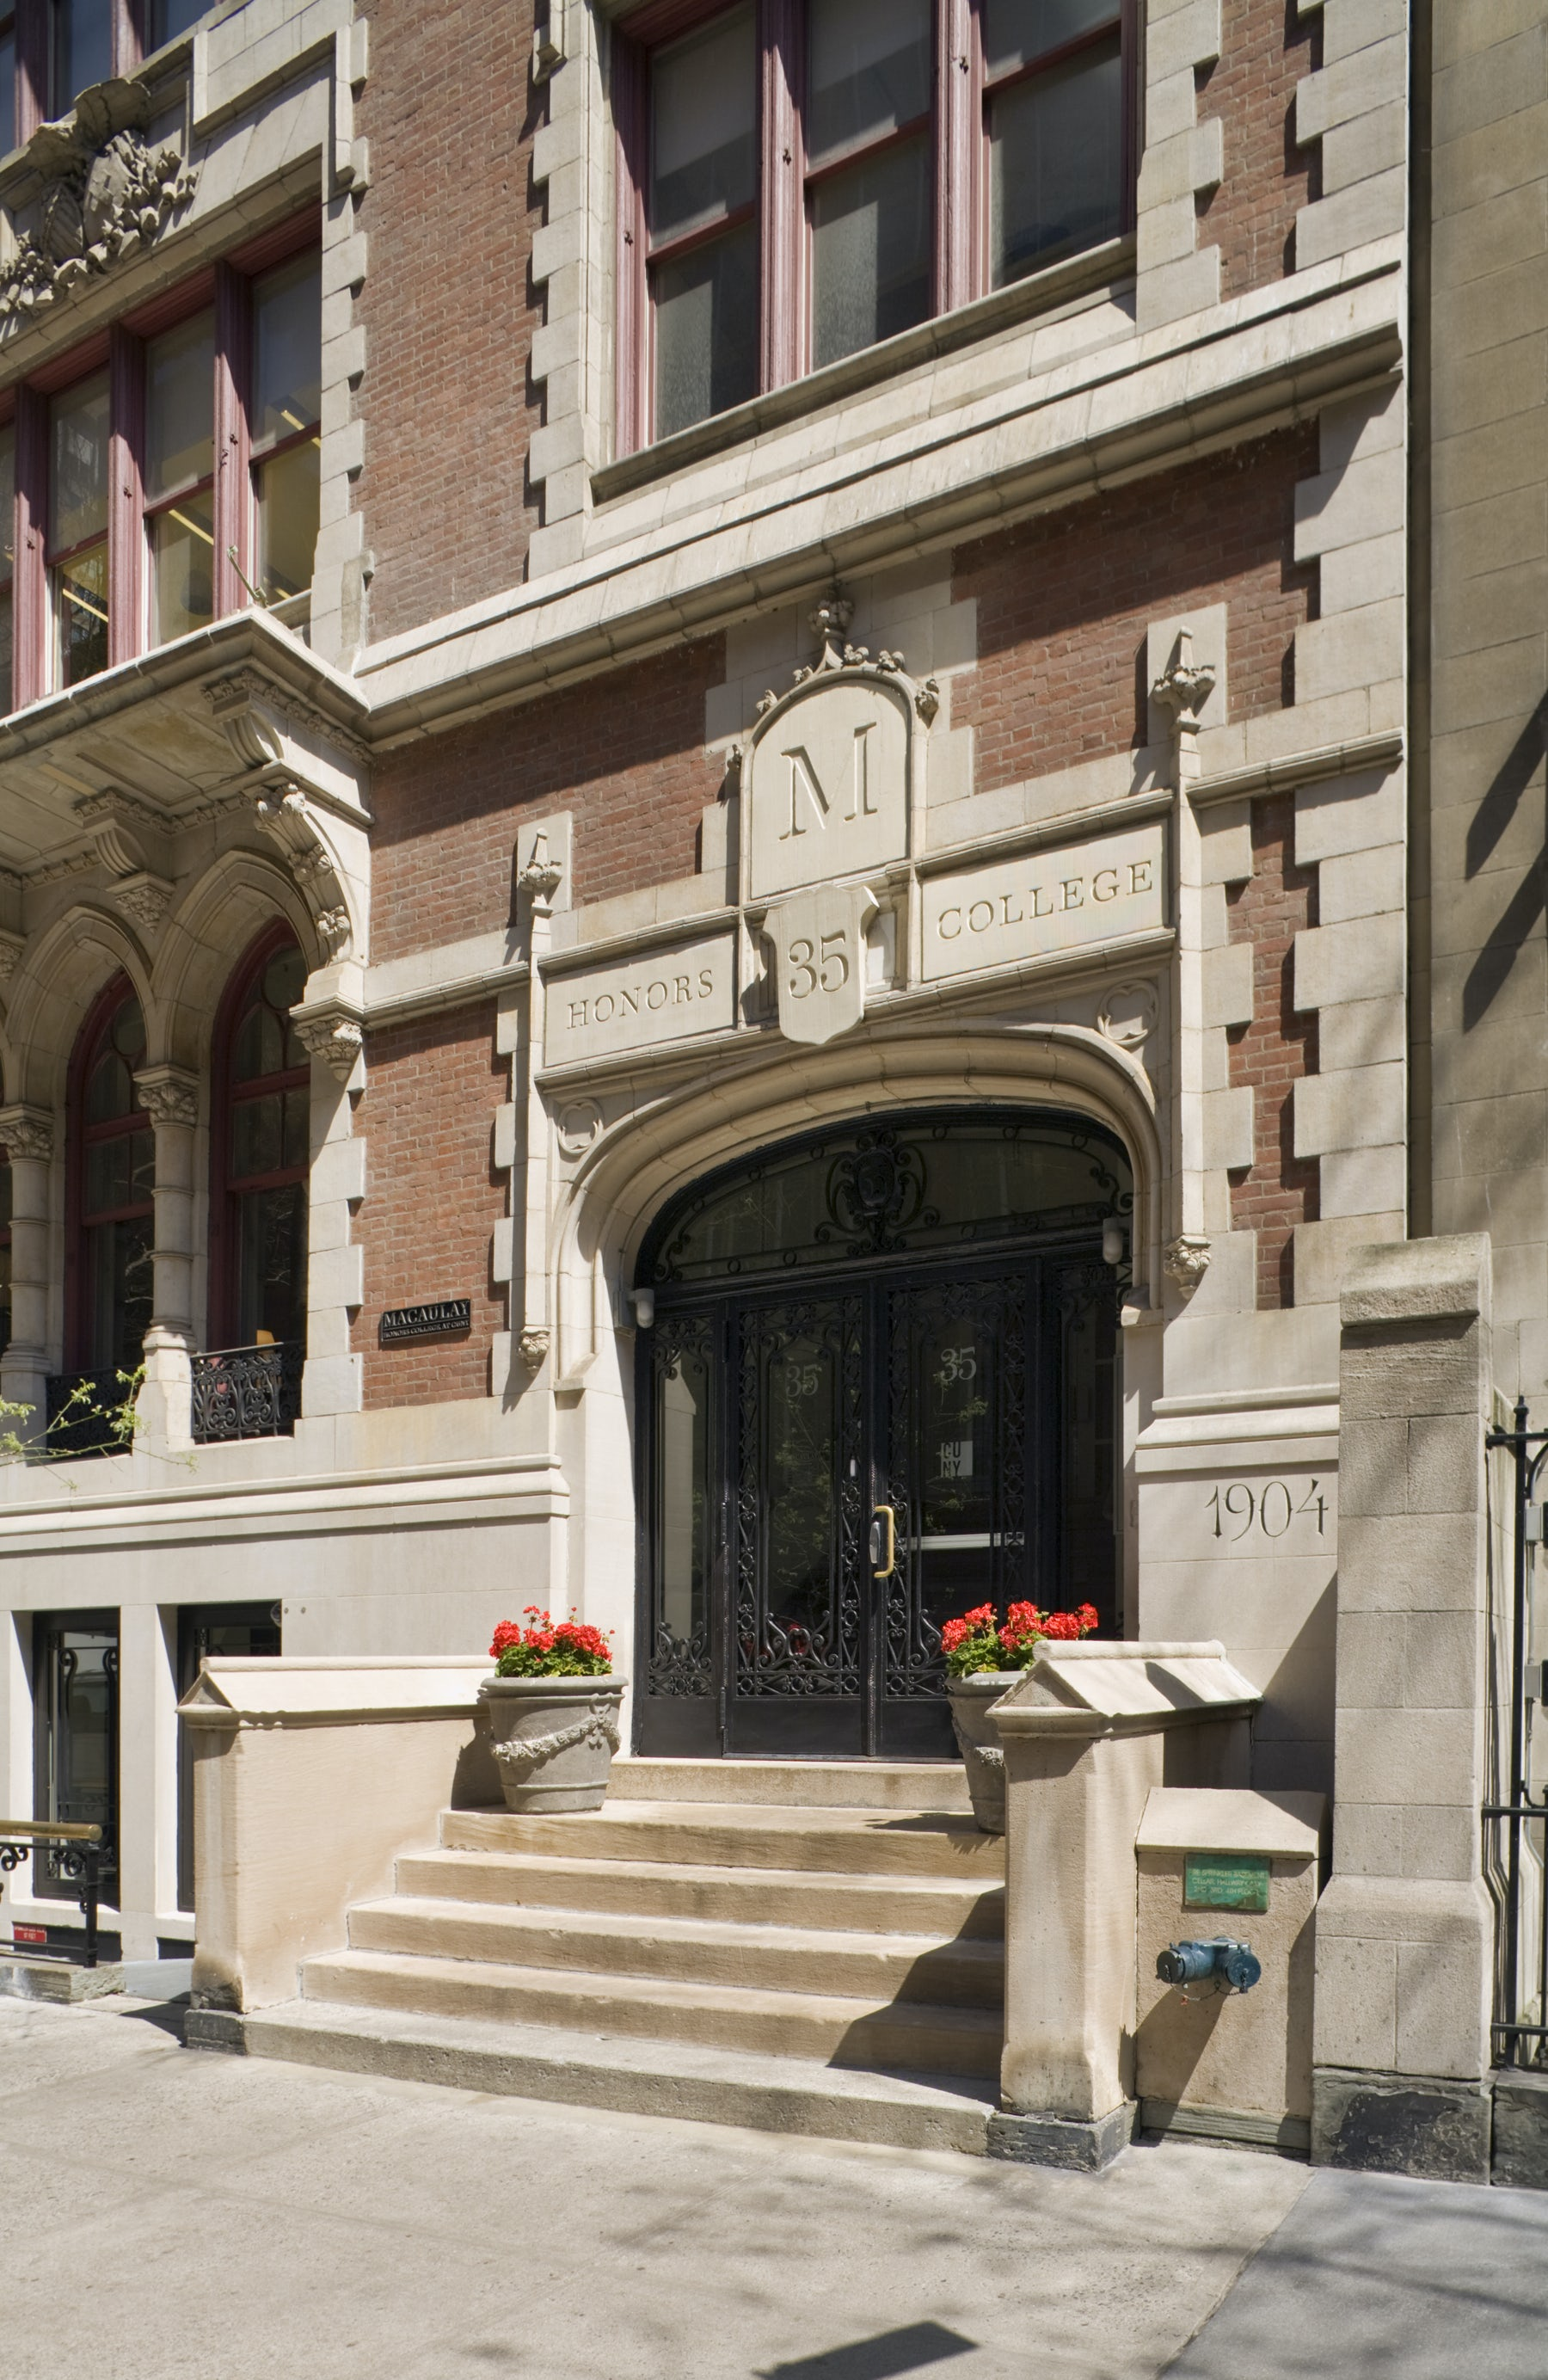 cuny macaulay honors college August 19, 20 and 21: your macaulay journey begins  macaulay honors  college at cuny is a highly selective college where new york's most promising .